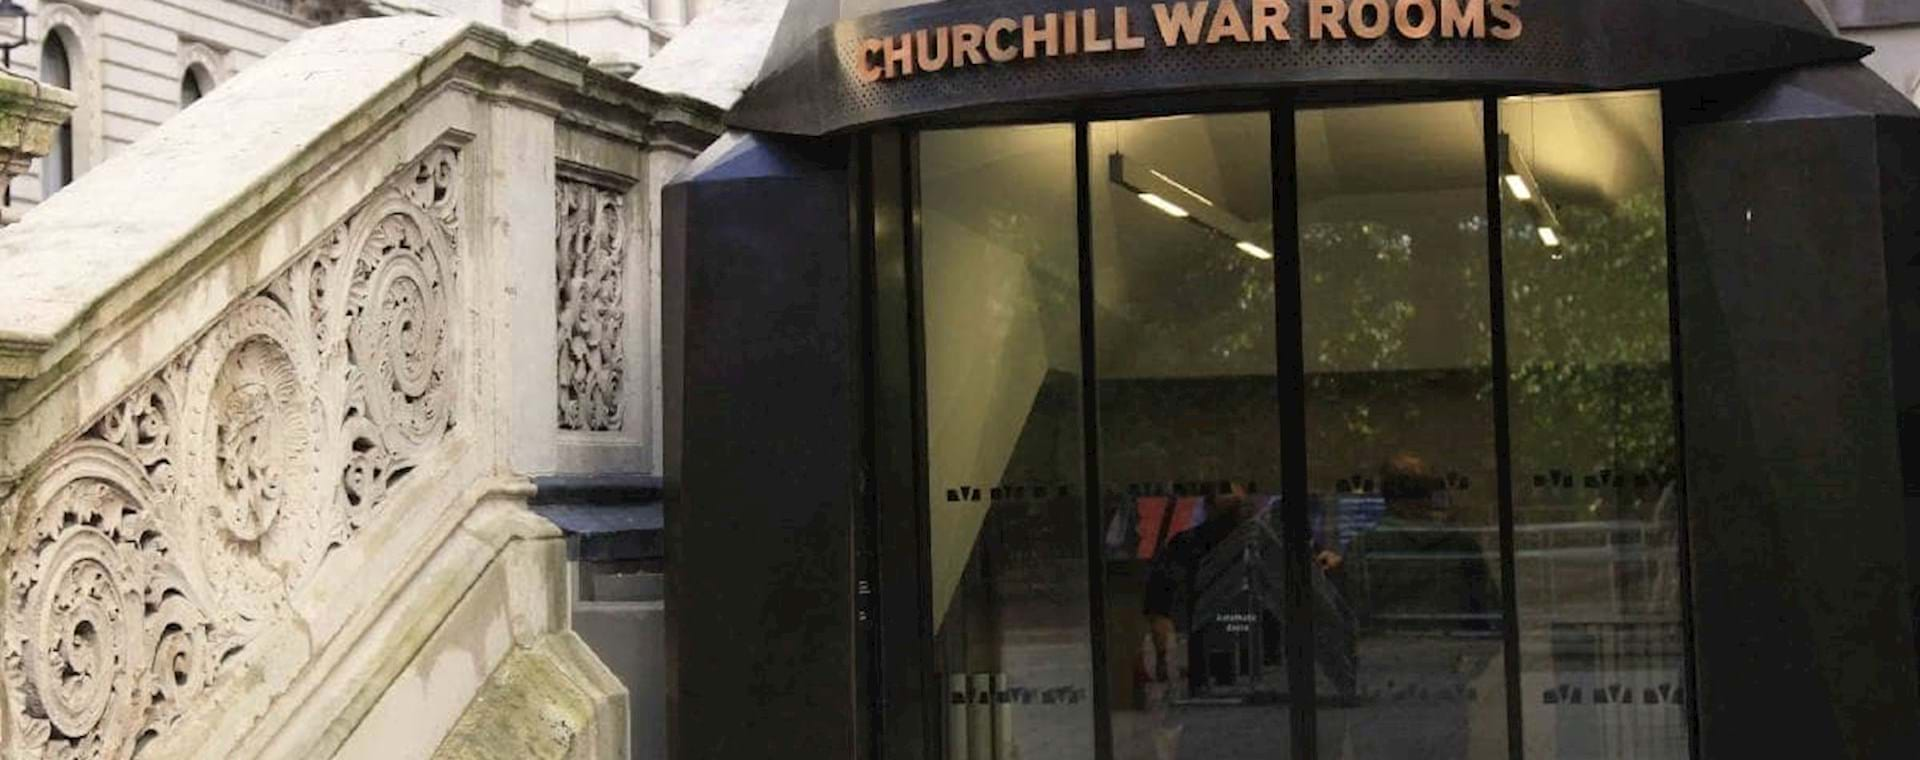 Entrance of the Churchill war room Museum